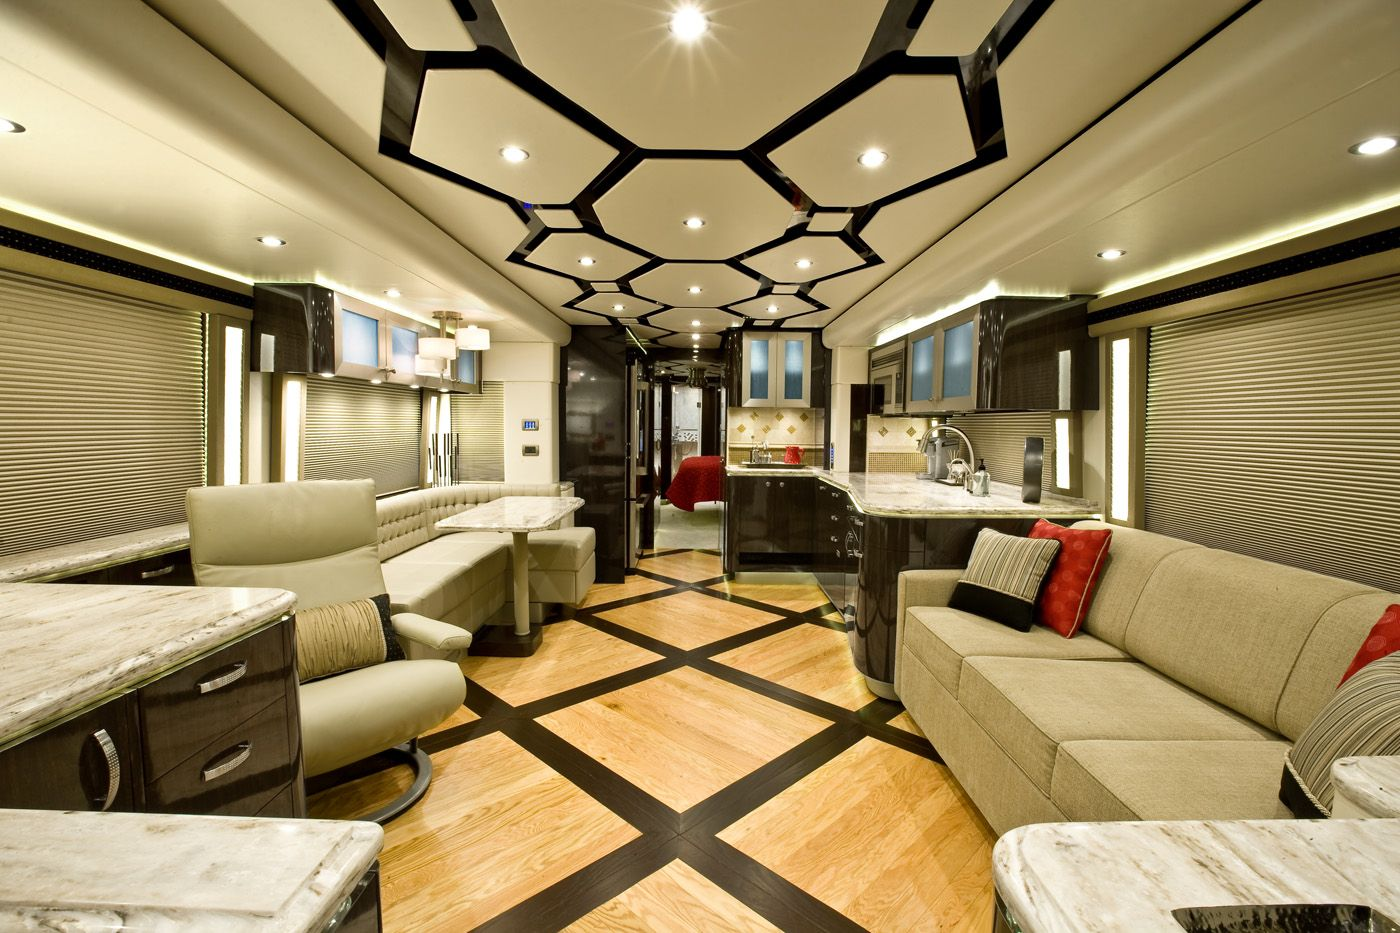 rv remodel modern - Google Search | freakin awesome | Pinterest | Rv